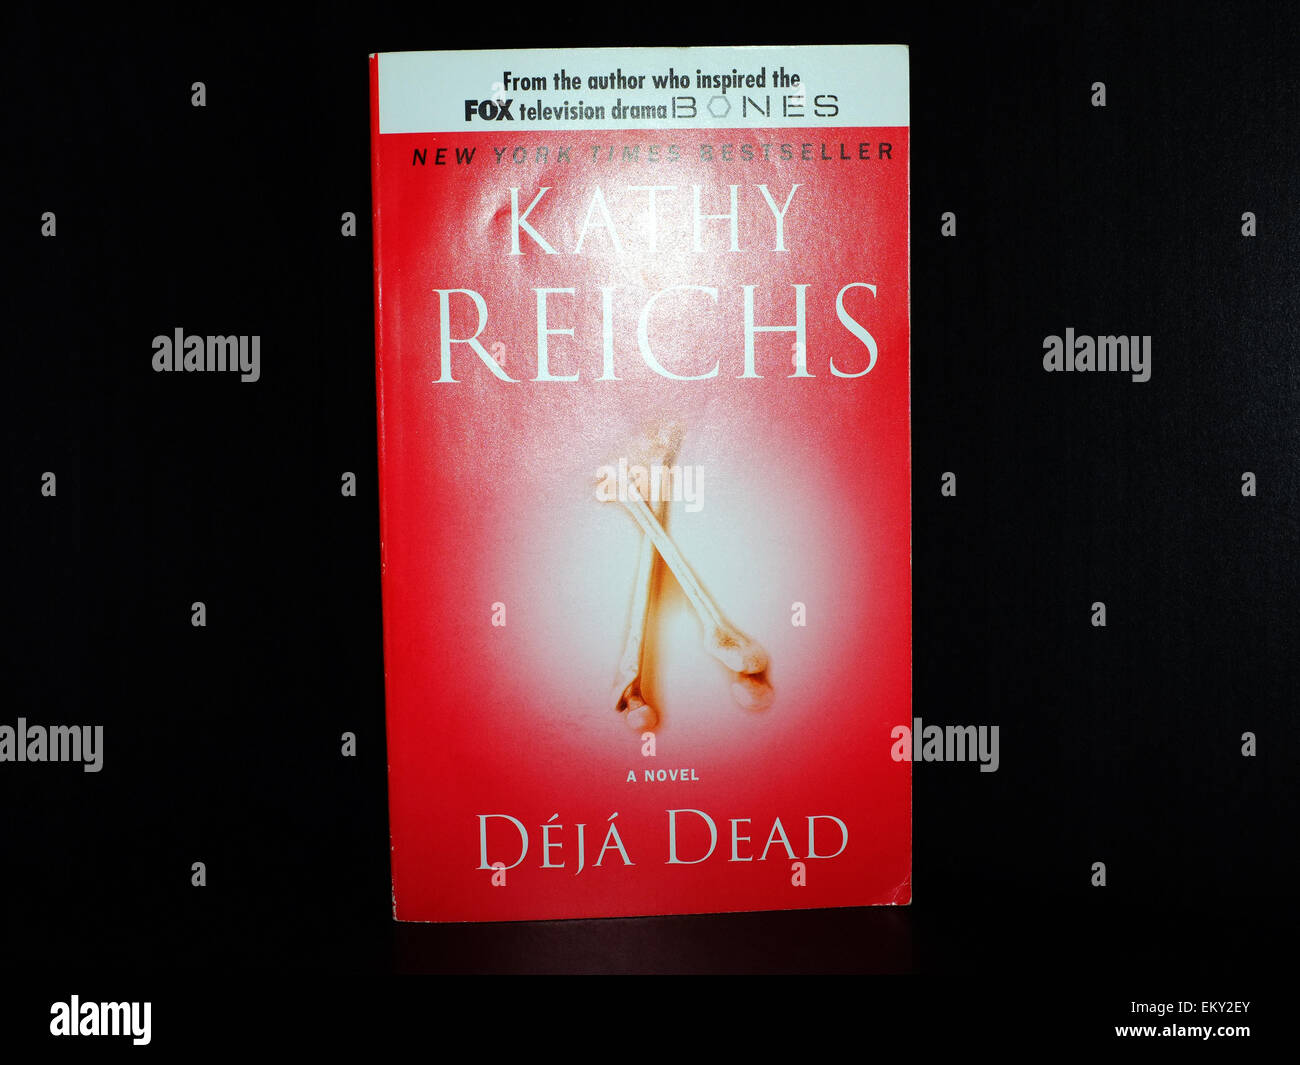 The front cover of an edition of Deja Dead by Kathy Reichs. - Stock Image